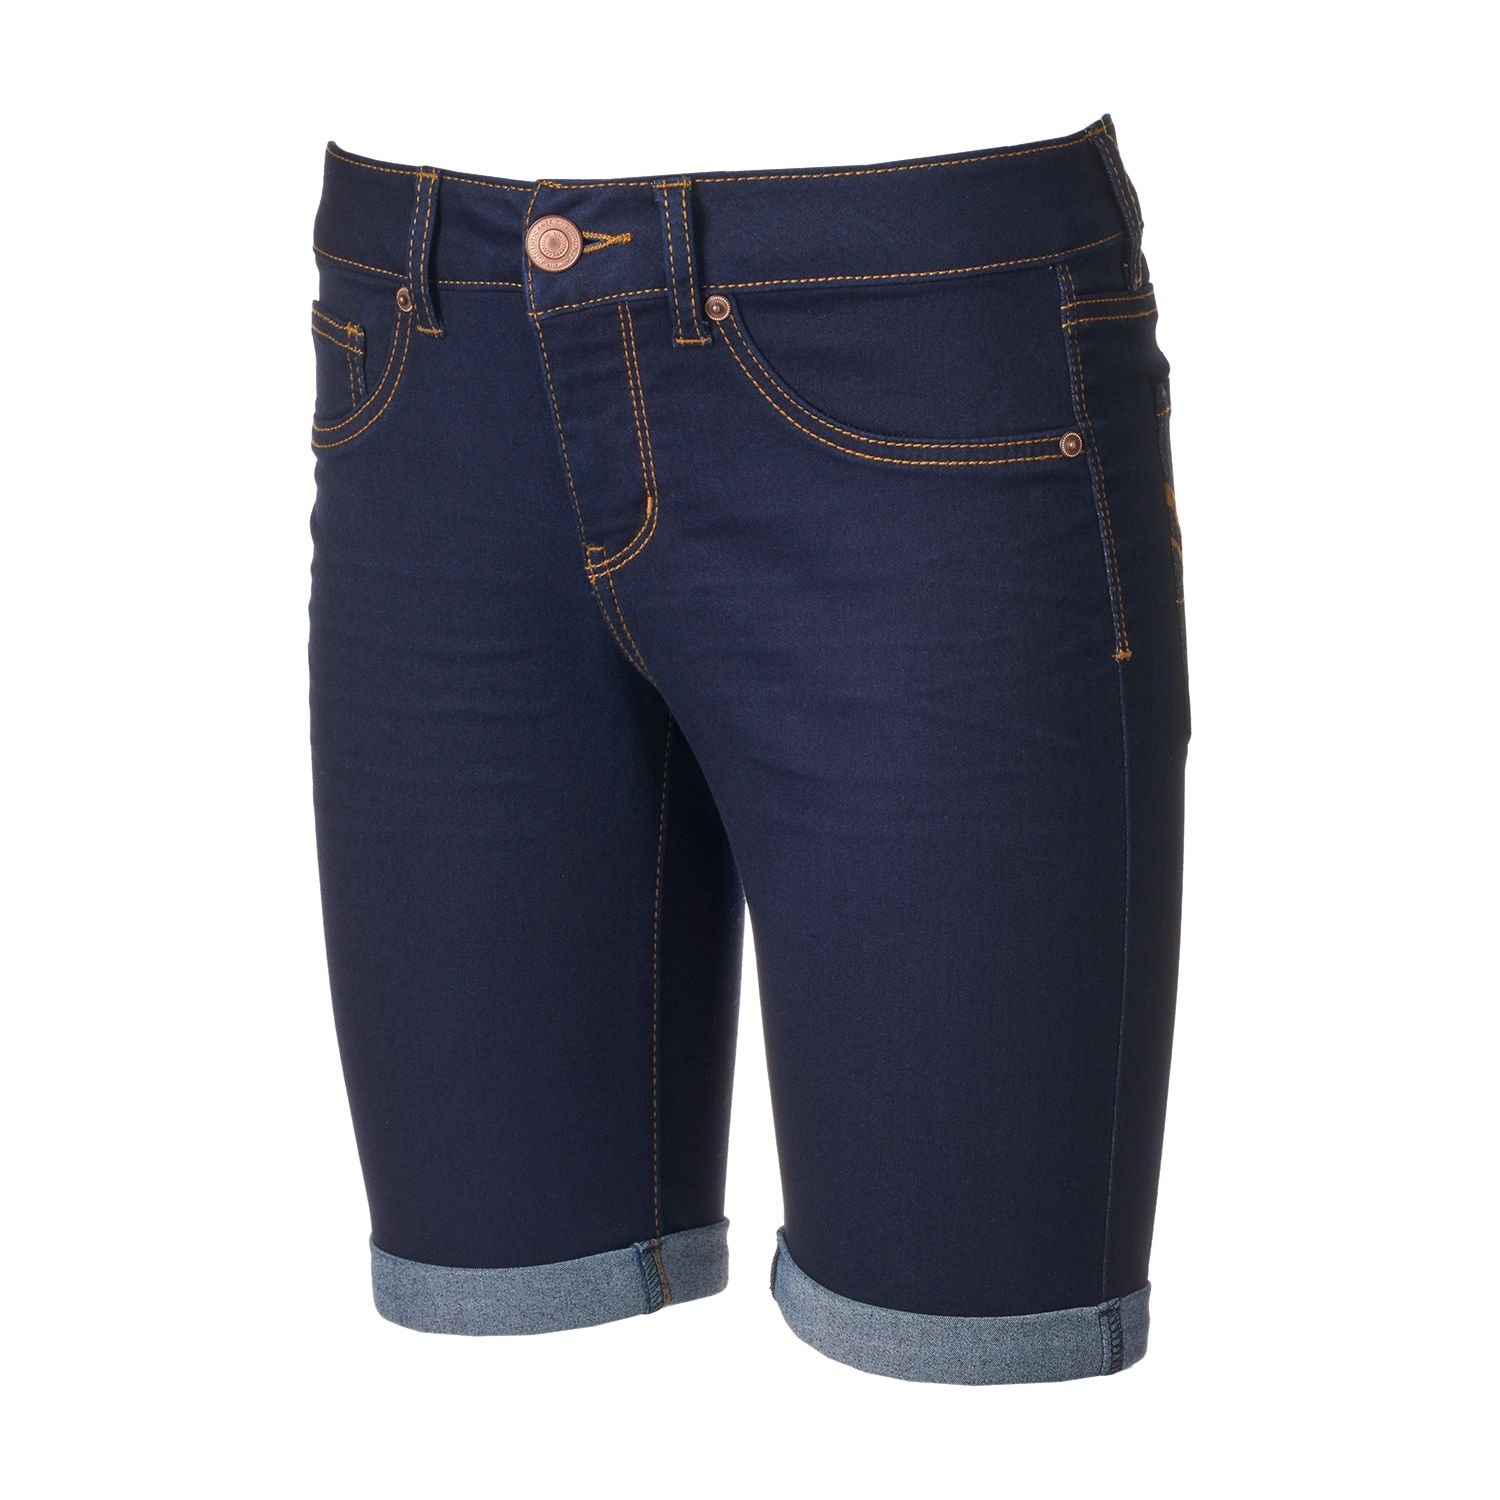 Navy Blue Shorts For Juniors